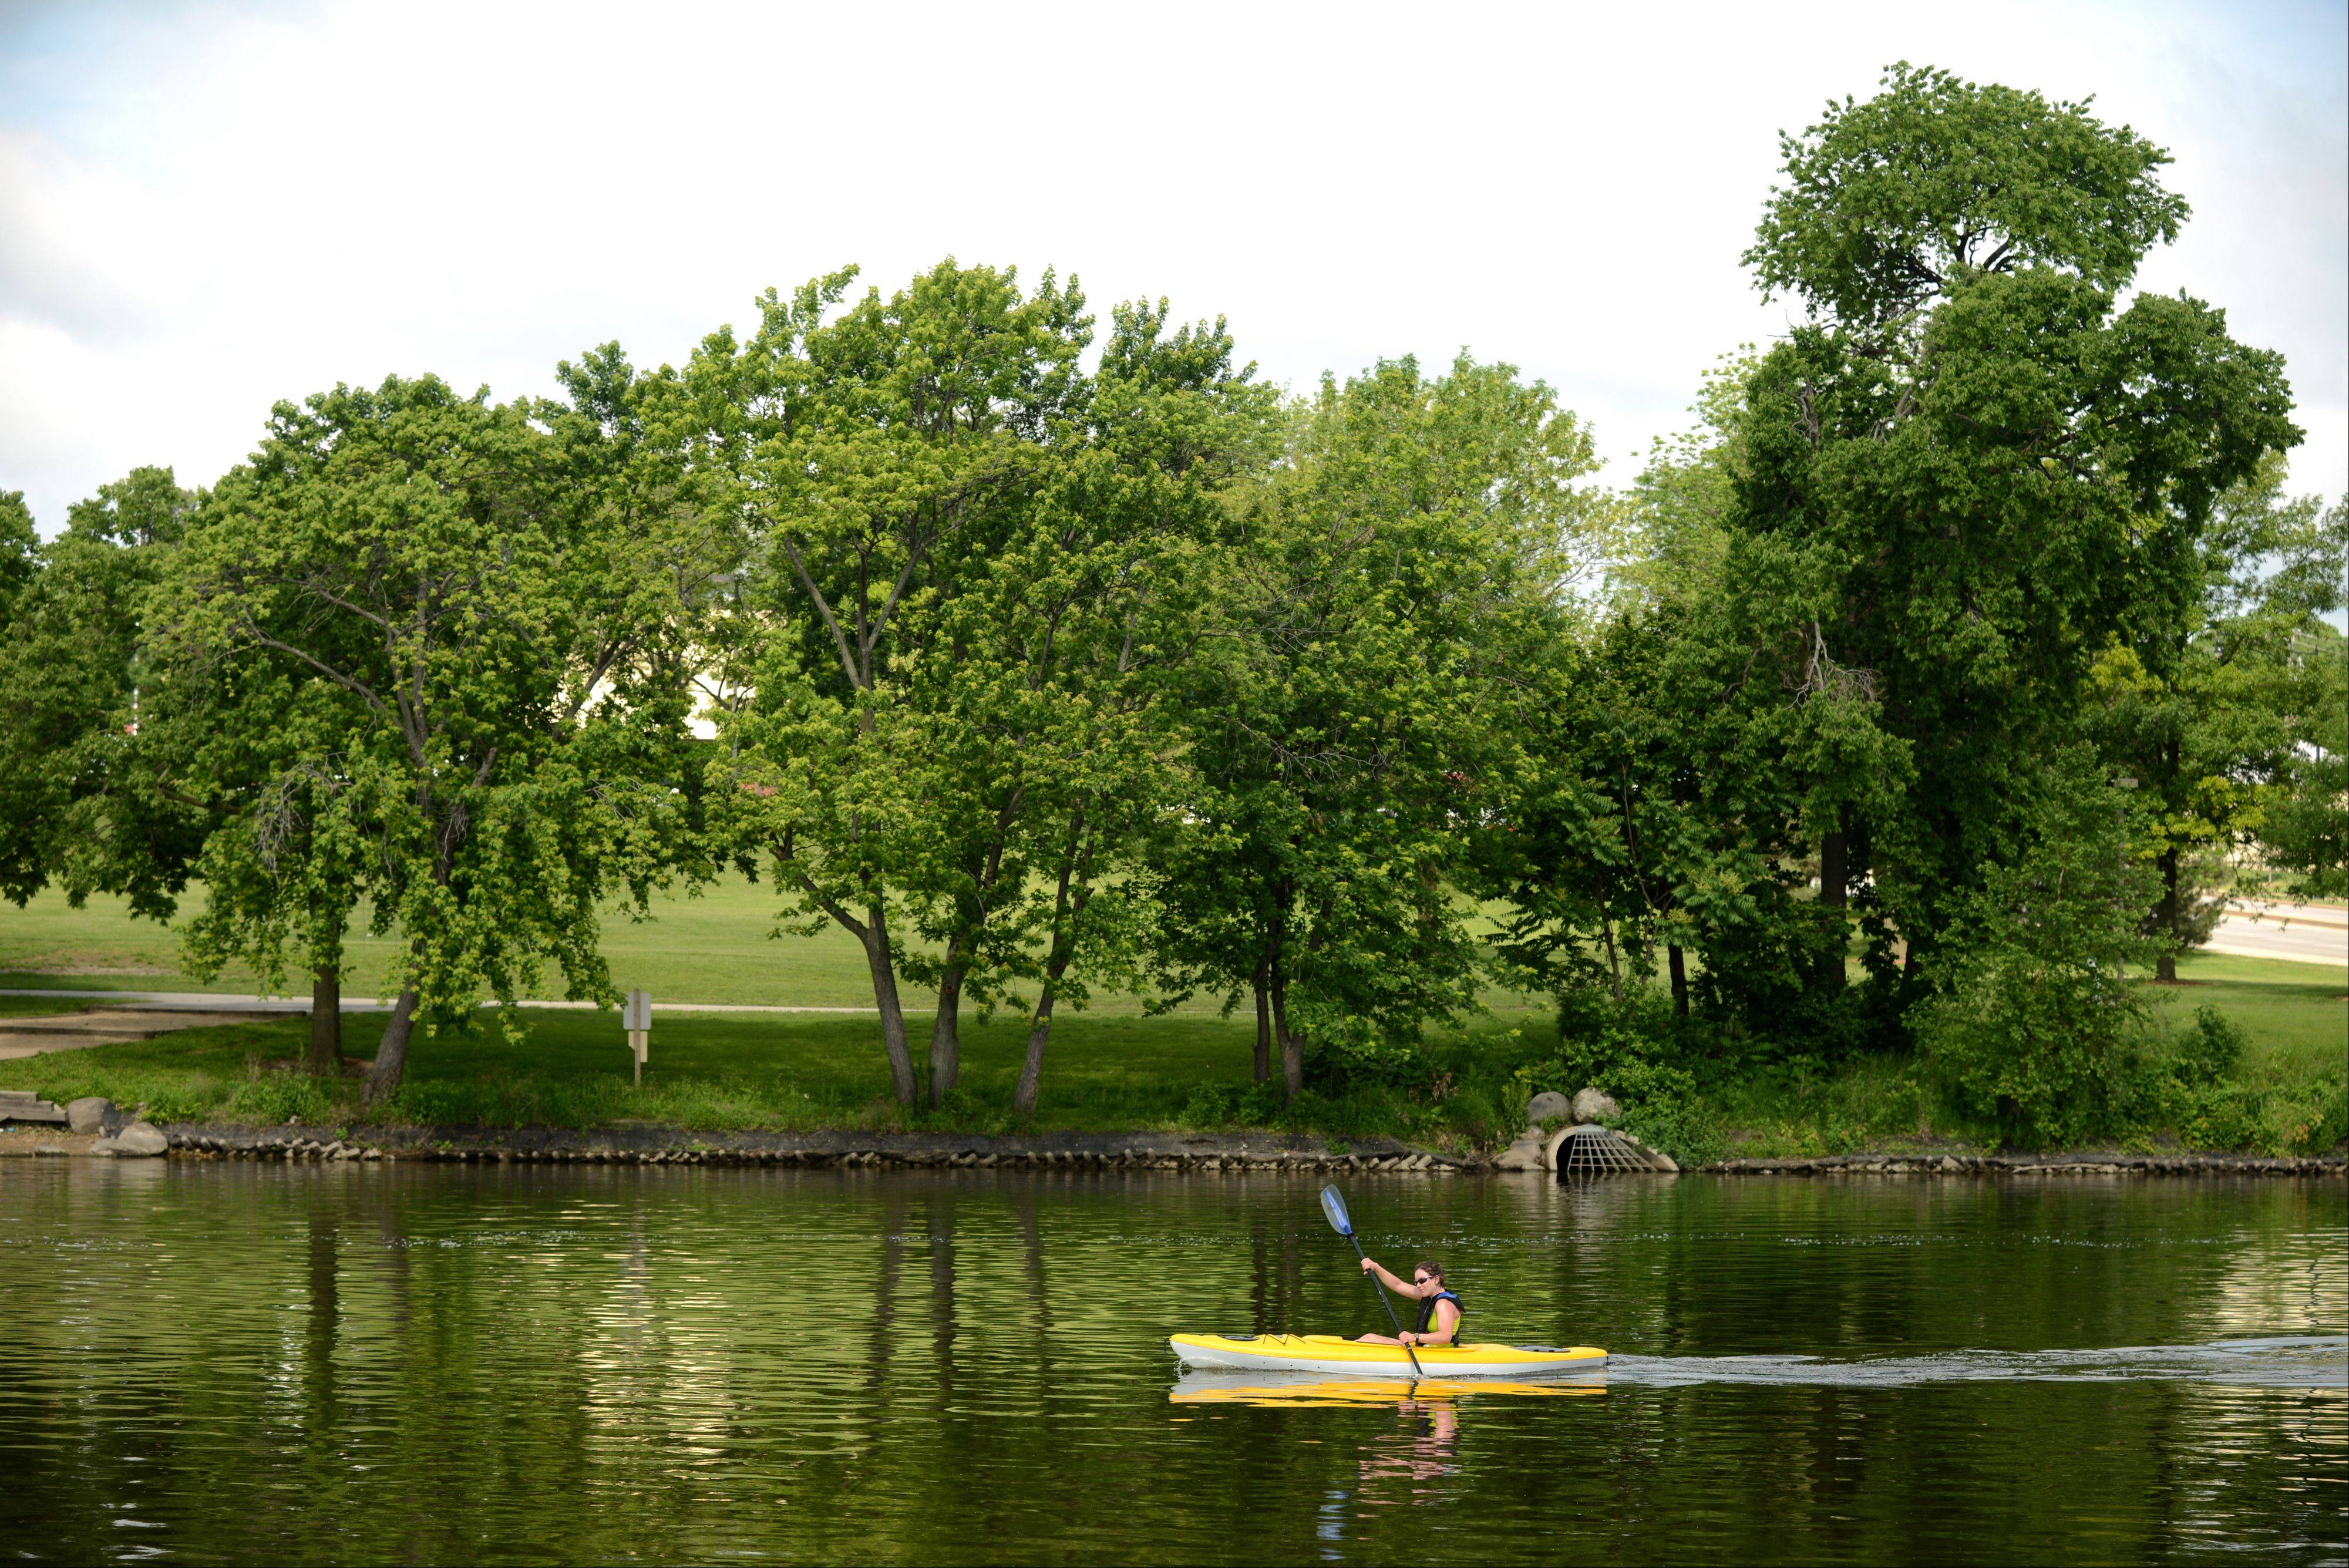 Urban recreation along the Fox River may increase as paddlers have a new place to launch and dock their kayaks at RiverEdge Park.